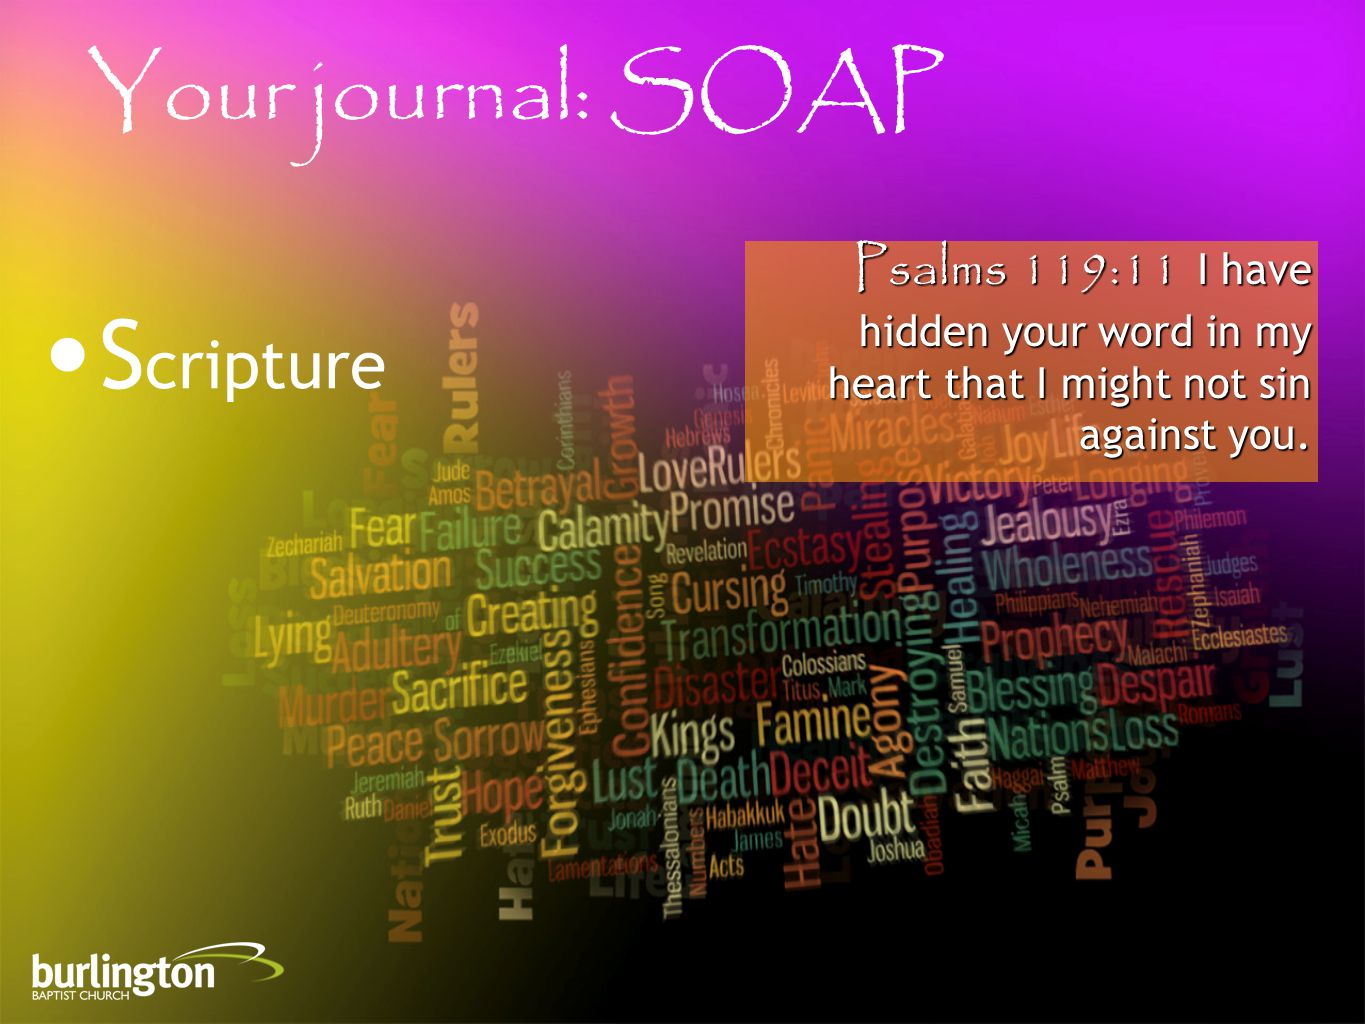 Psalms 119:11 I have hidden your word in my heart that I might not sin against you. Your journal: SOAP S cripture